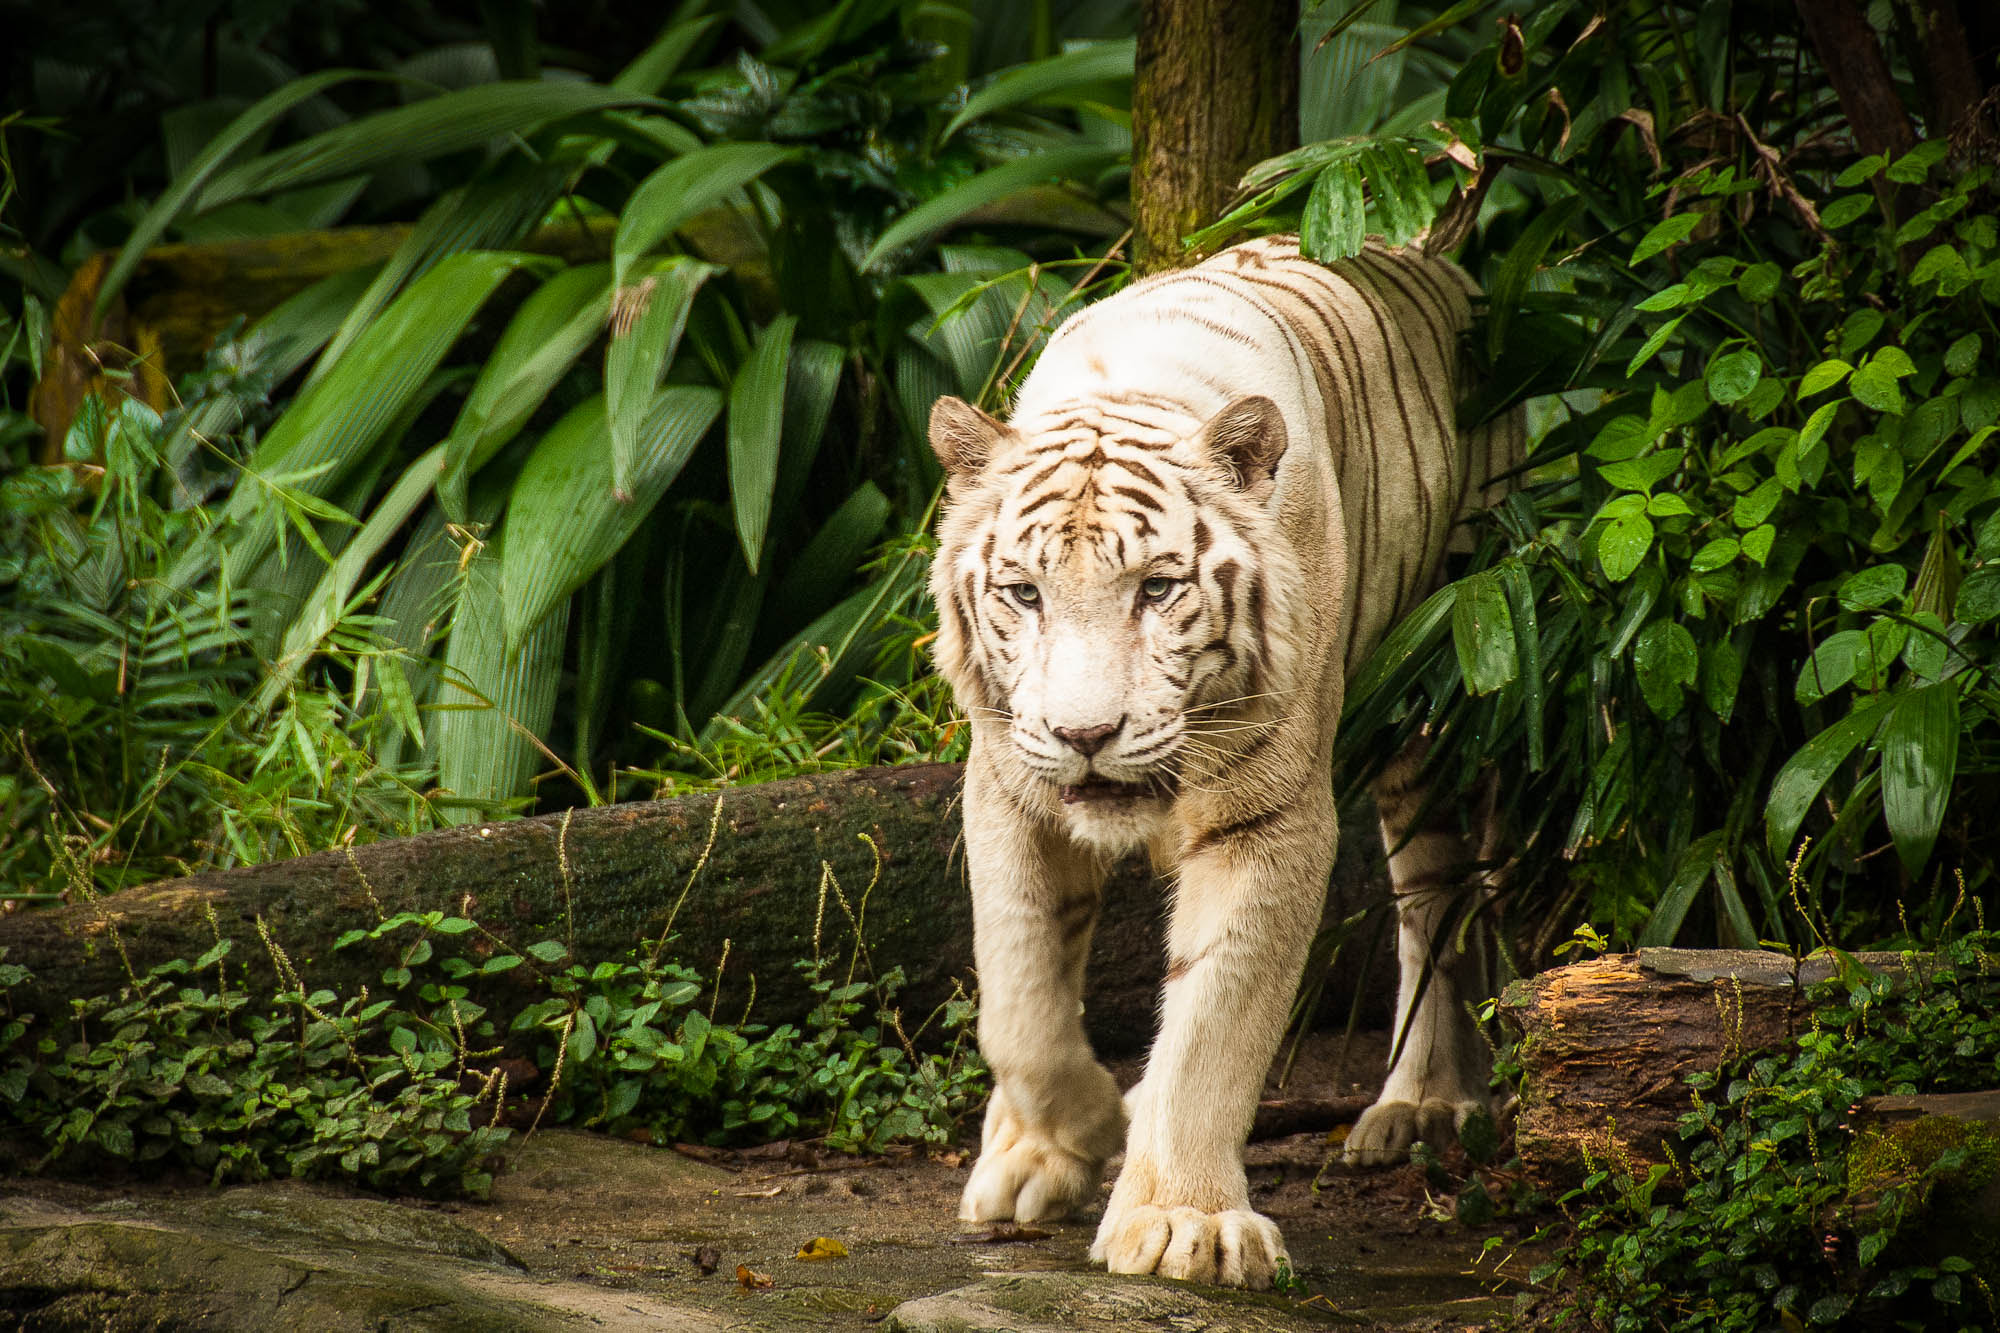 Photograph The White Tiger by Jupert Sison on 500px